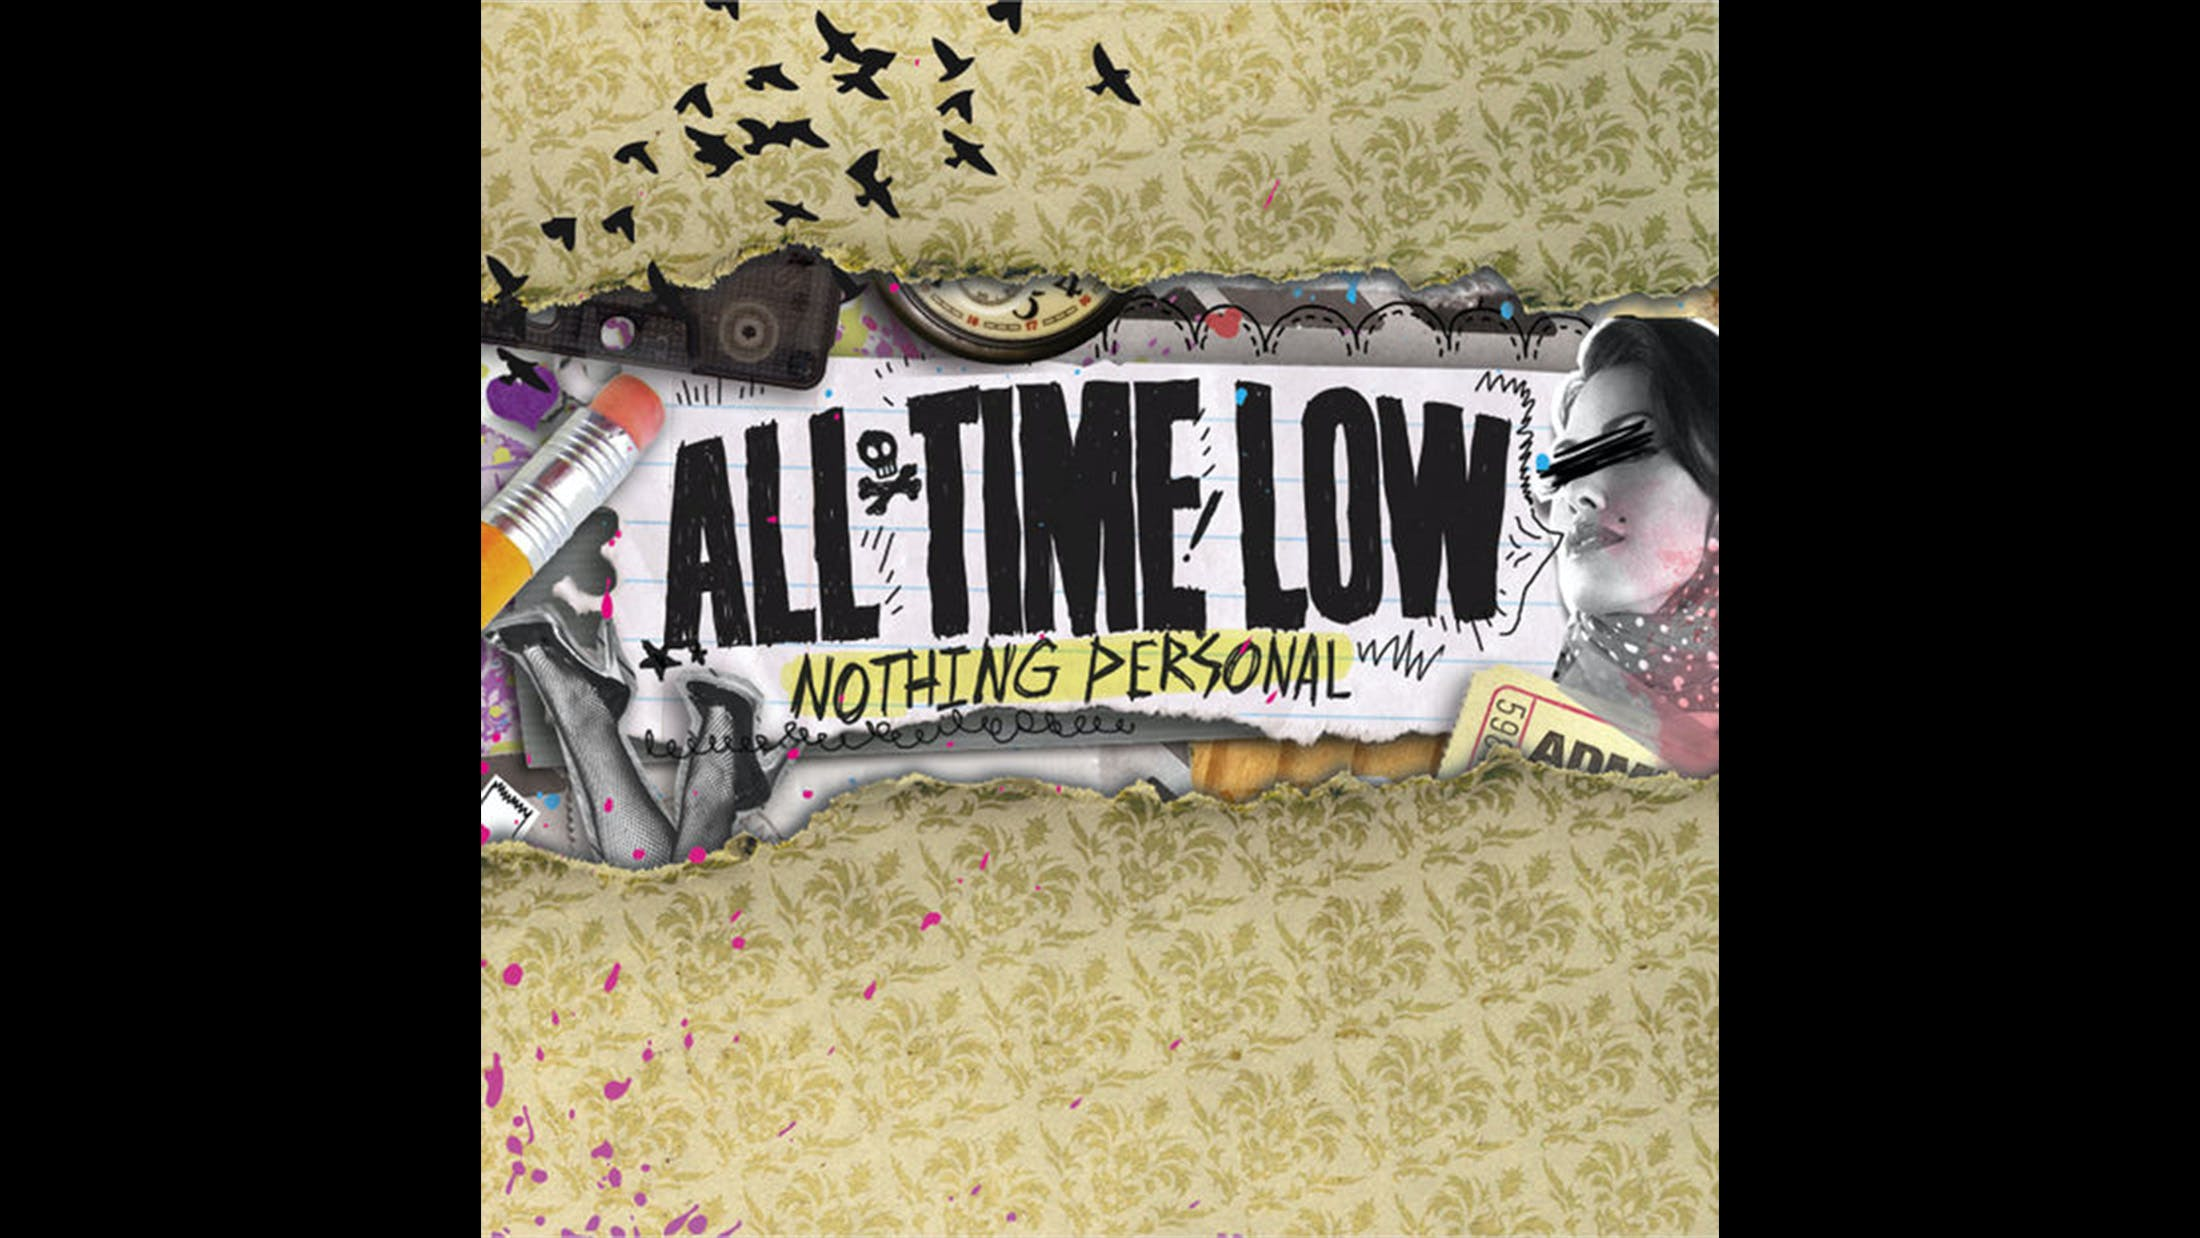 16. All Time Low - Nothing Personal (2009)